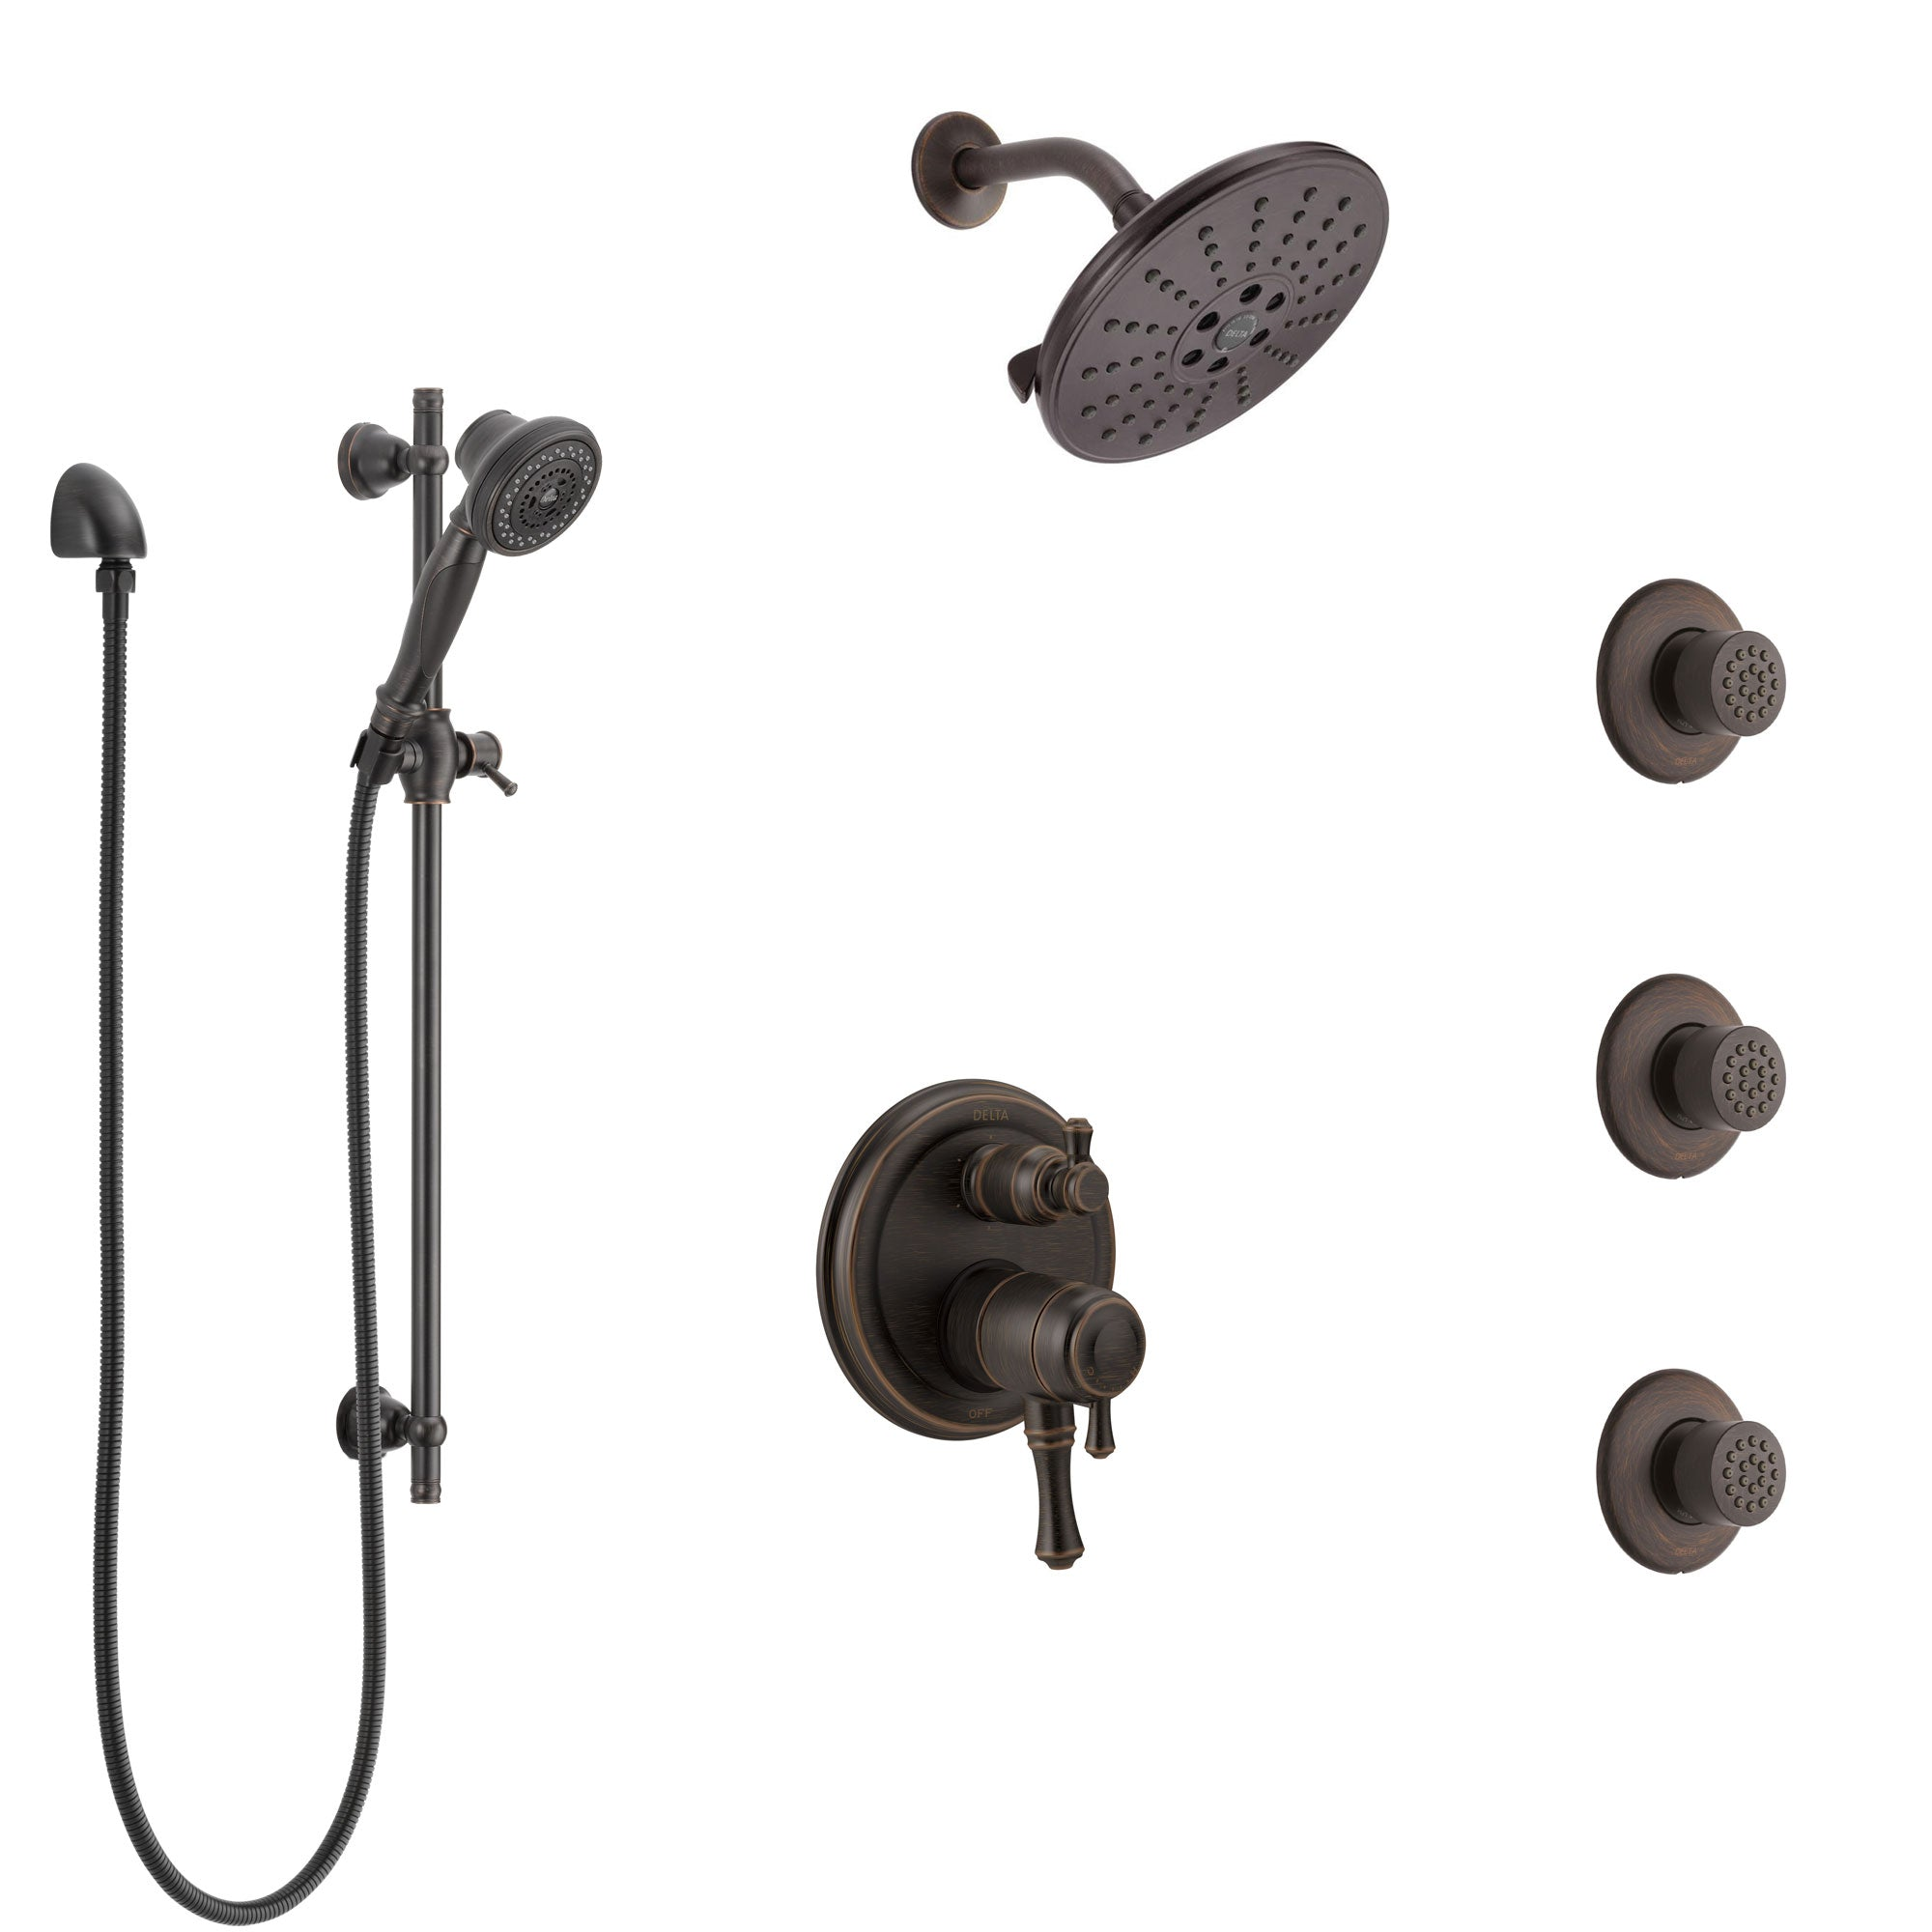 Delta Cassidy Venetian Bronze Shower System with Dual Control Handle, Integrated Diverter, Showerhead, 3 Body Sprays, and Hand Shower SS27997RB6